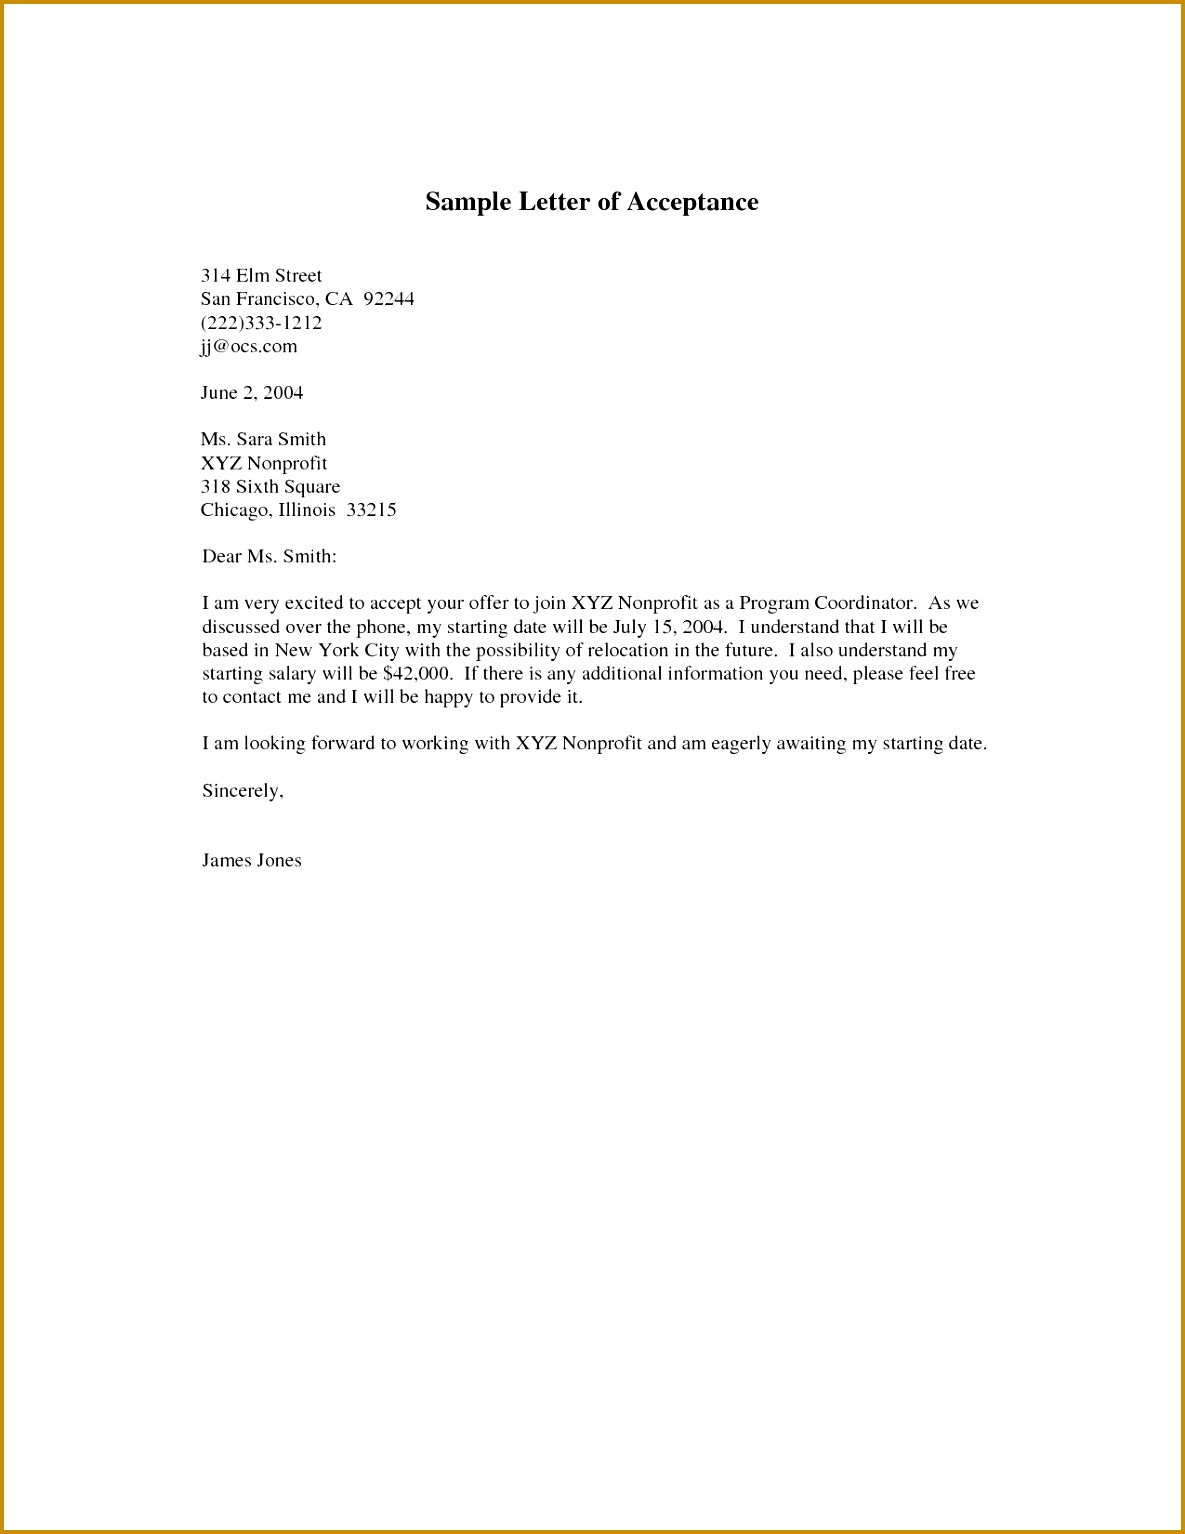 Reply Letter Format Best Template Collection 15341185